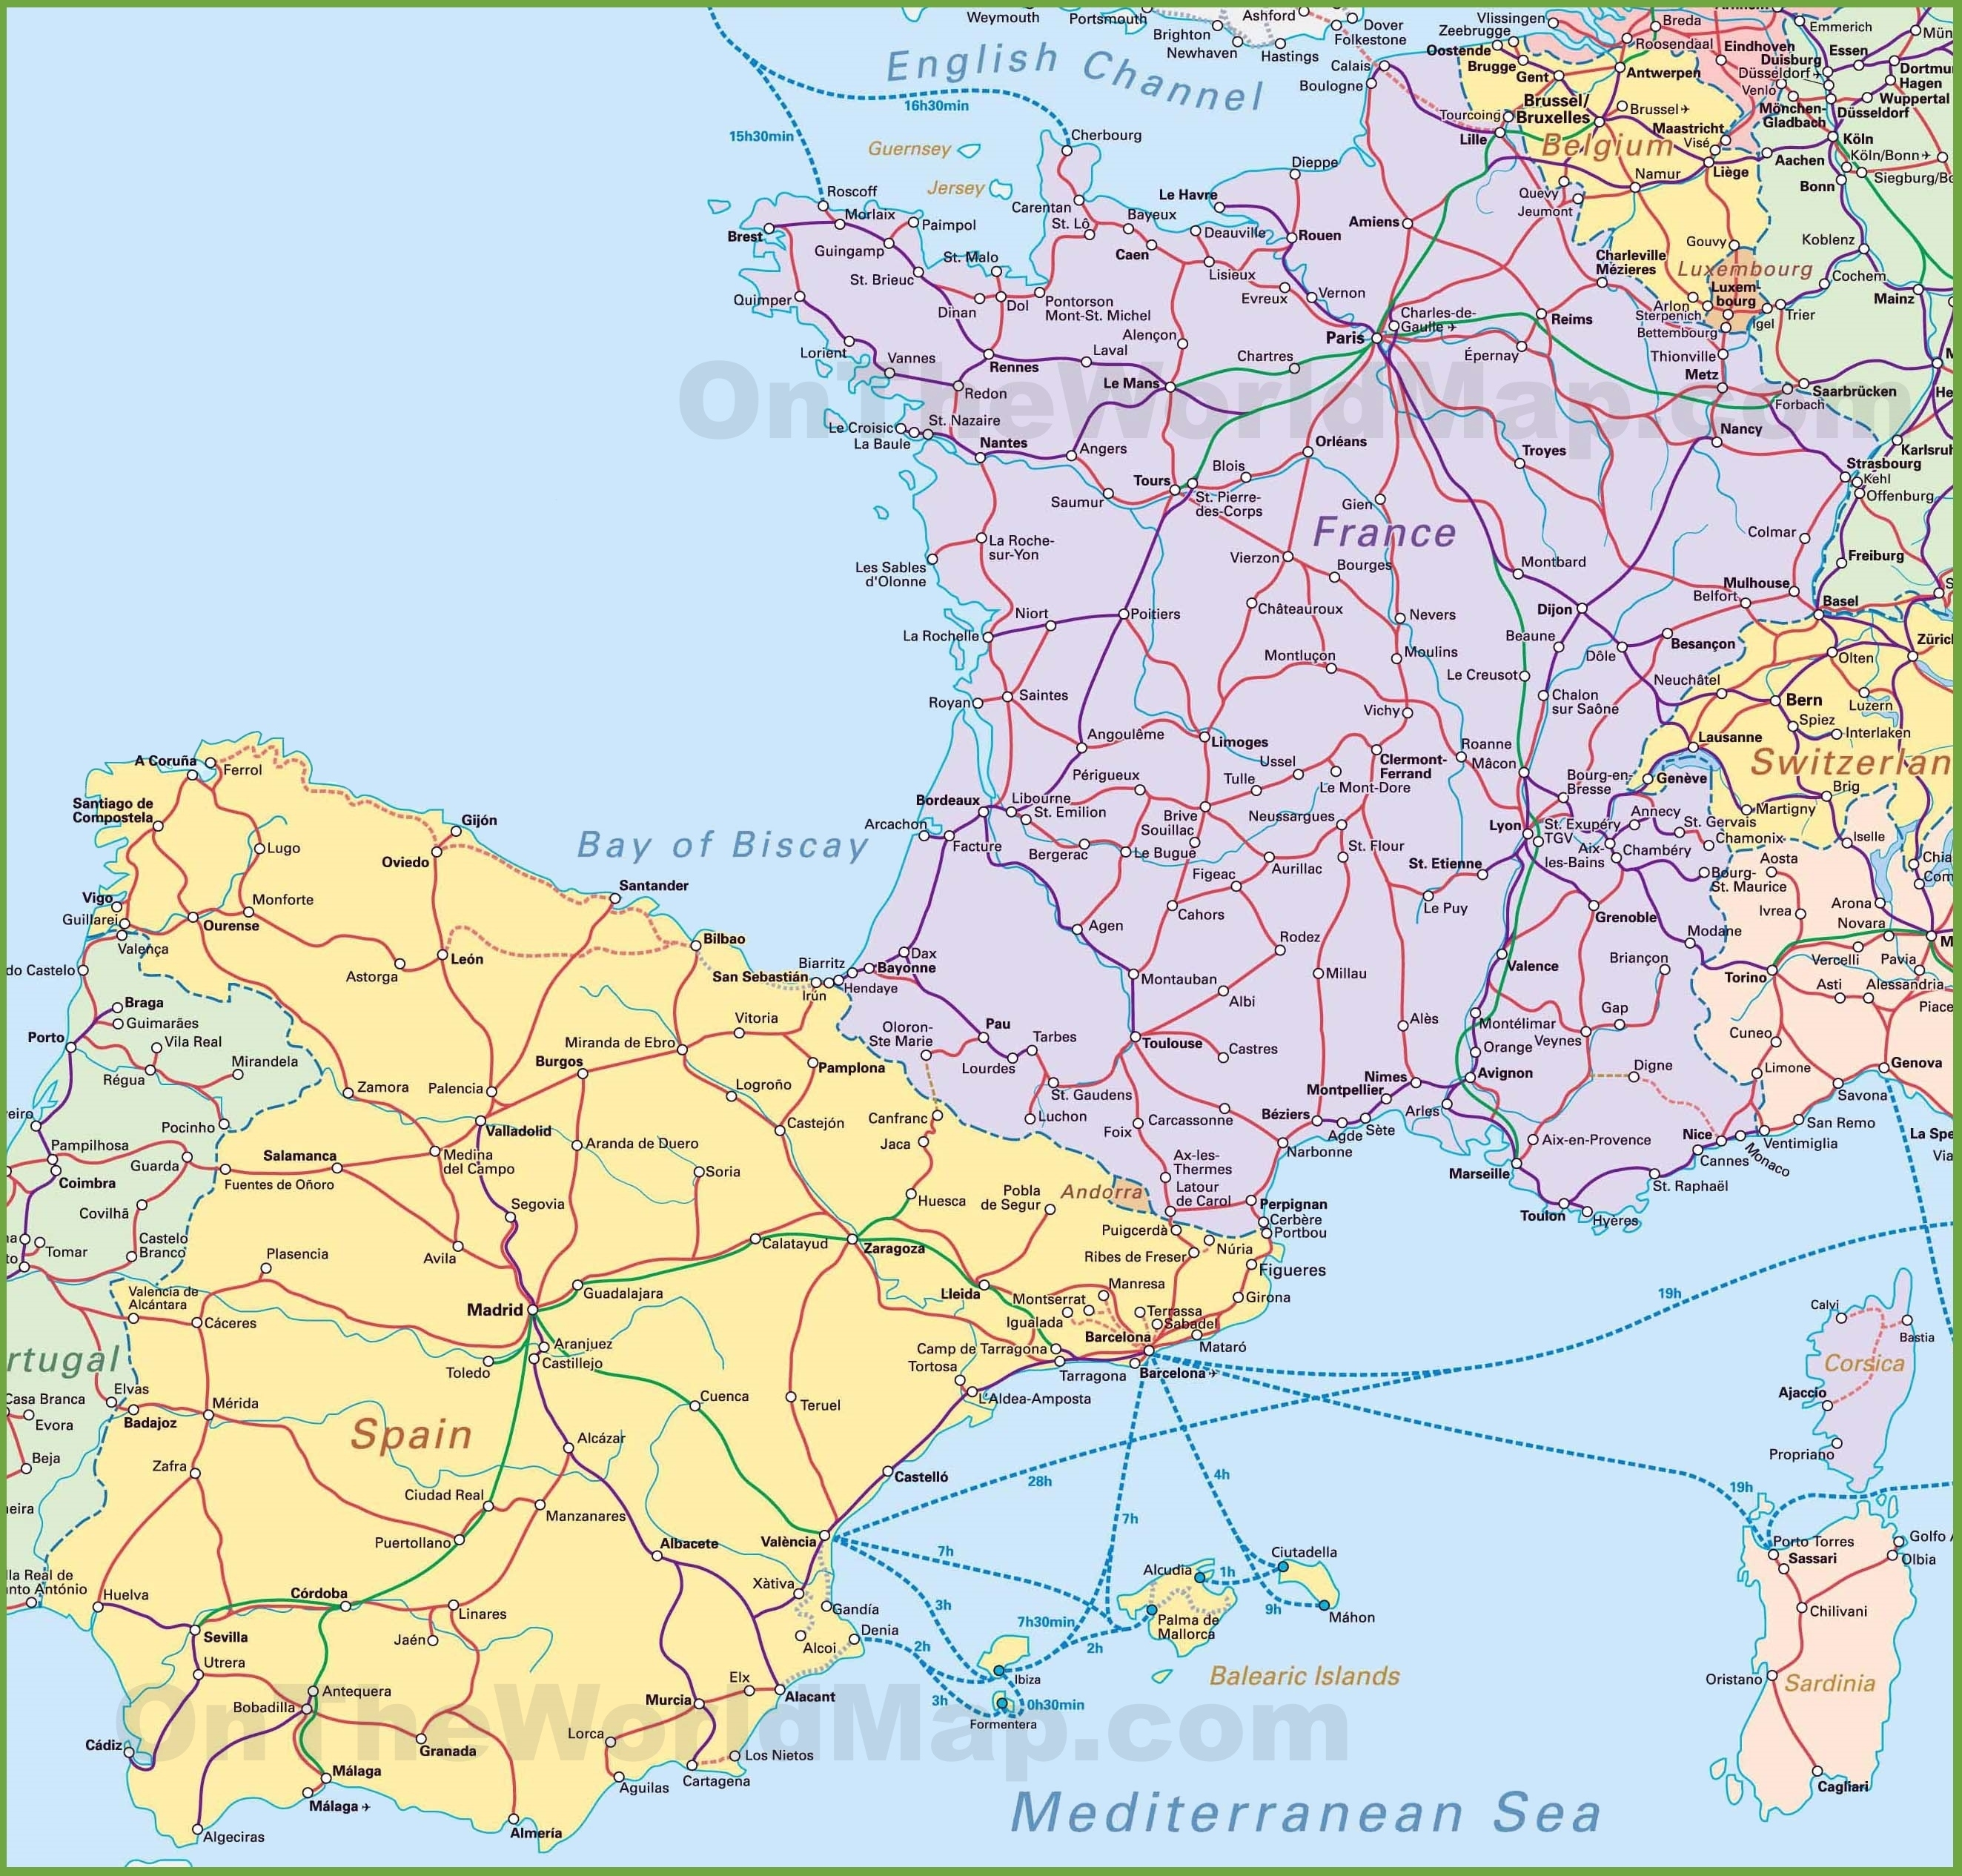 Map Of Switzerland And Germany With Cities And Travel Information throughout France Germany Switzerland Map